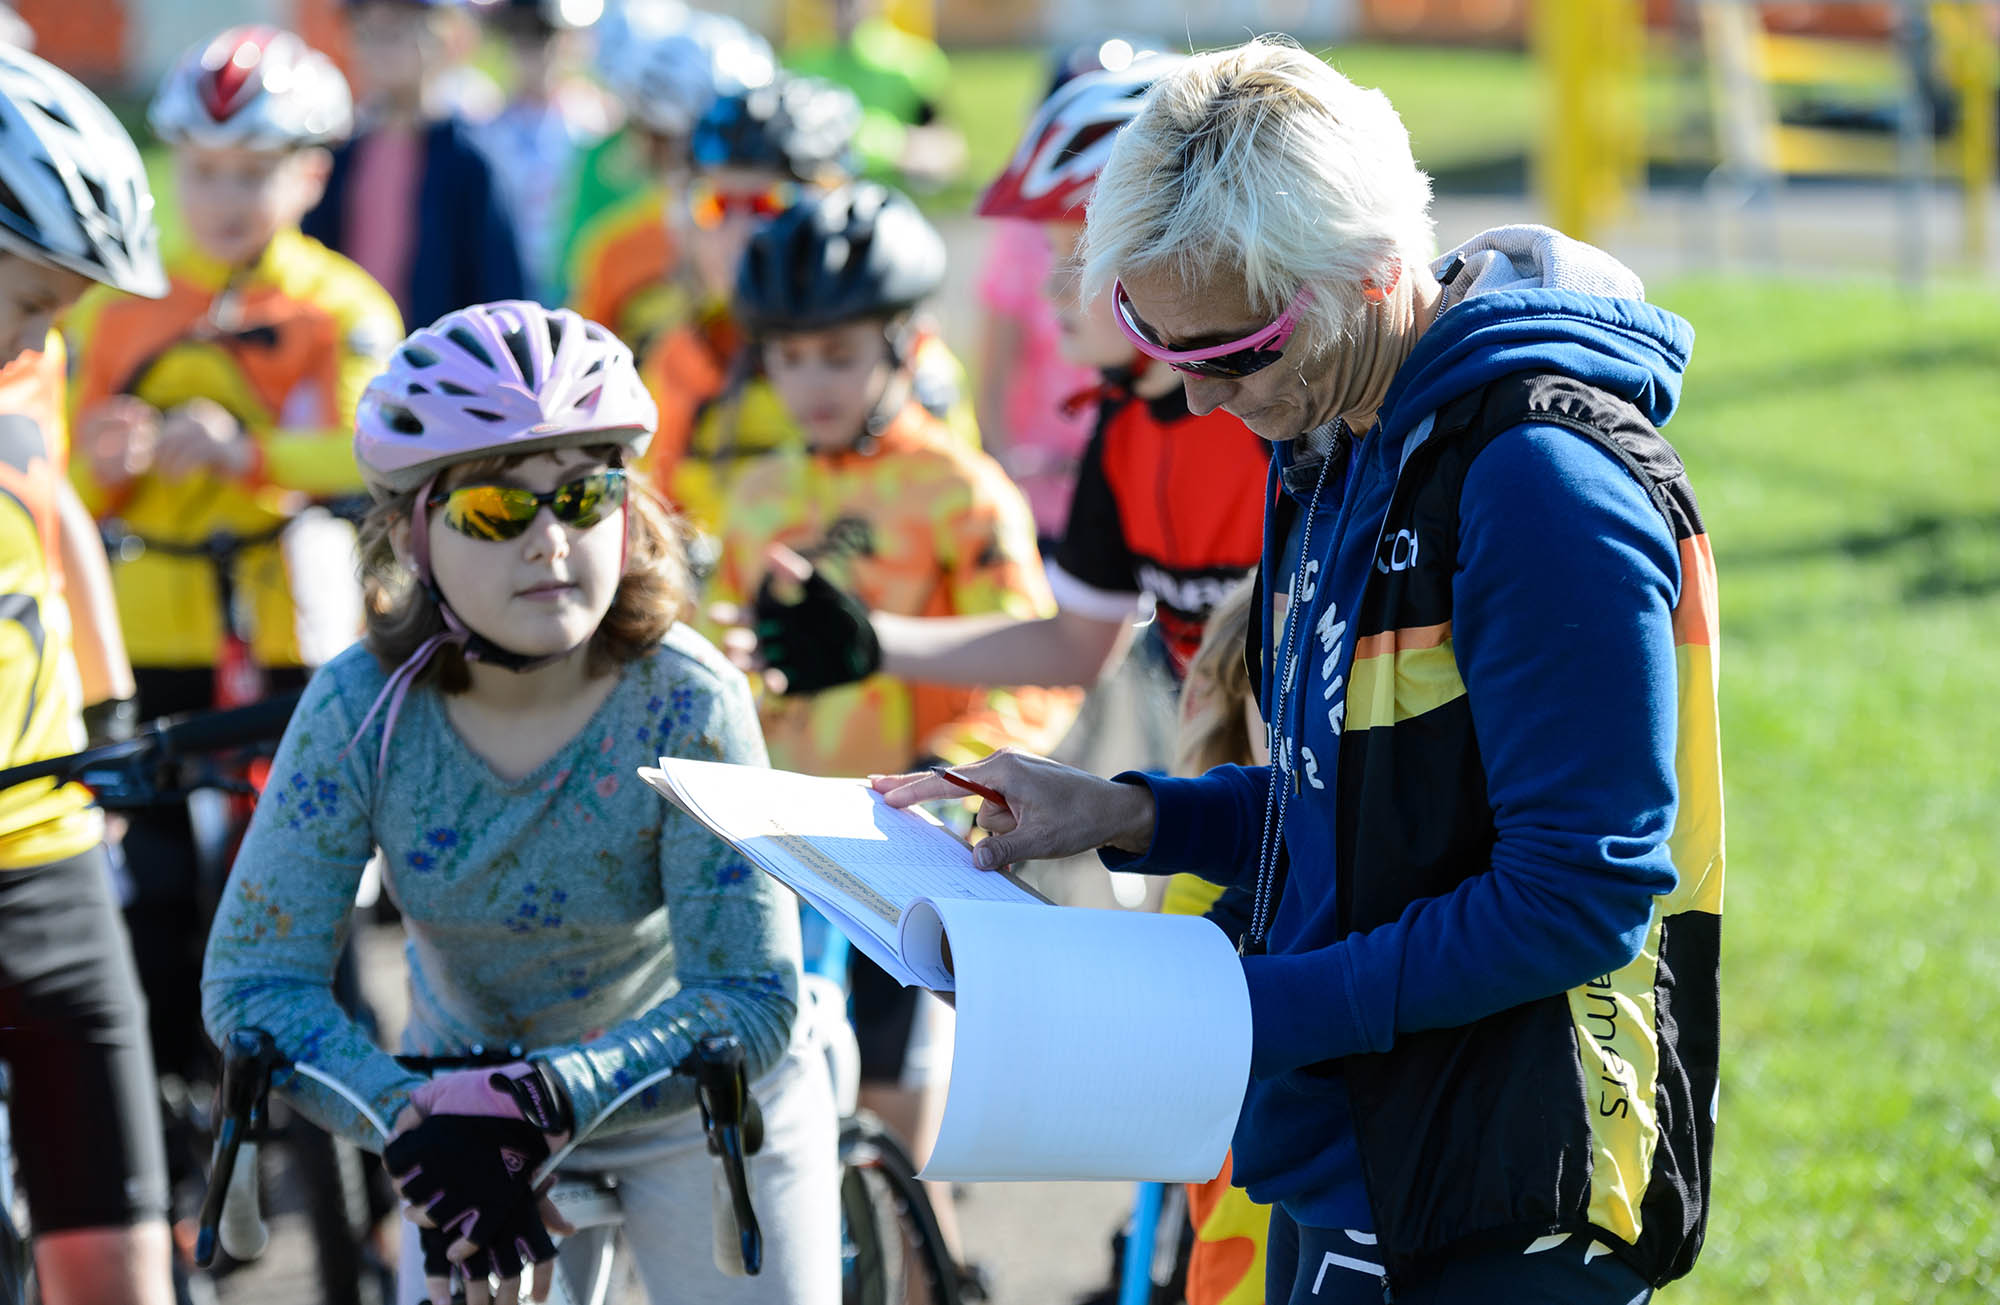 A female cycling coach with the children she is coaching